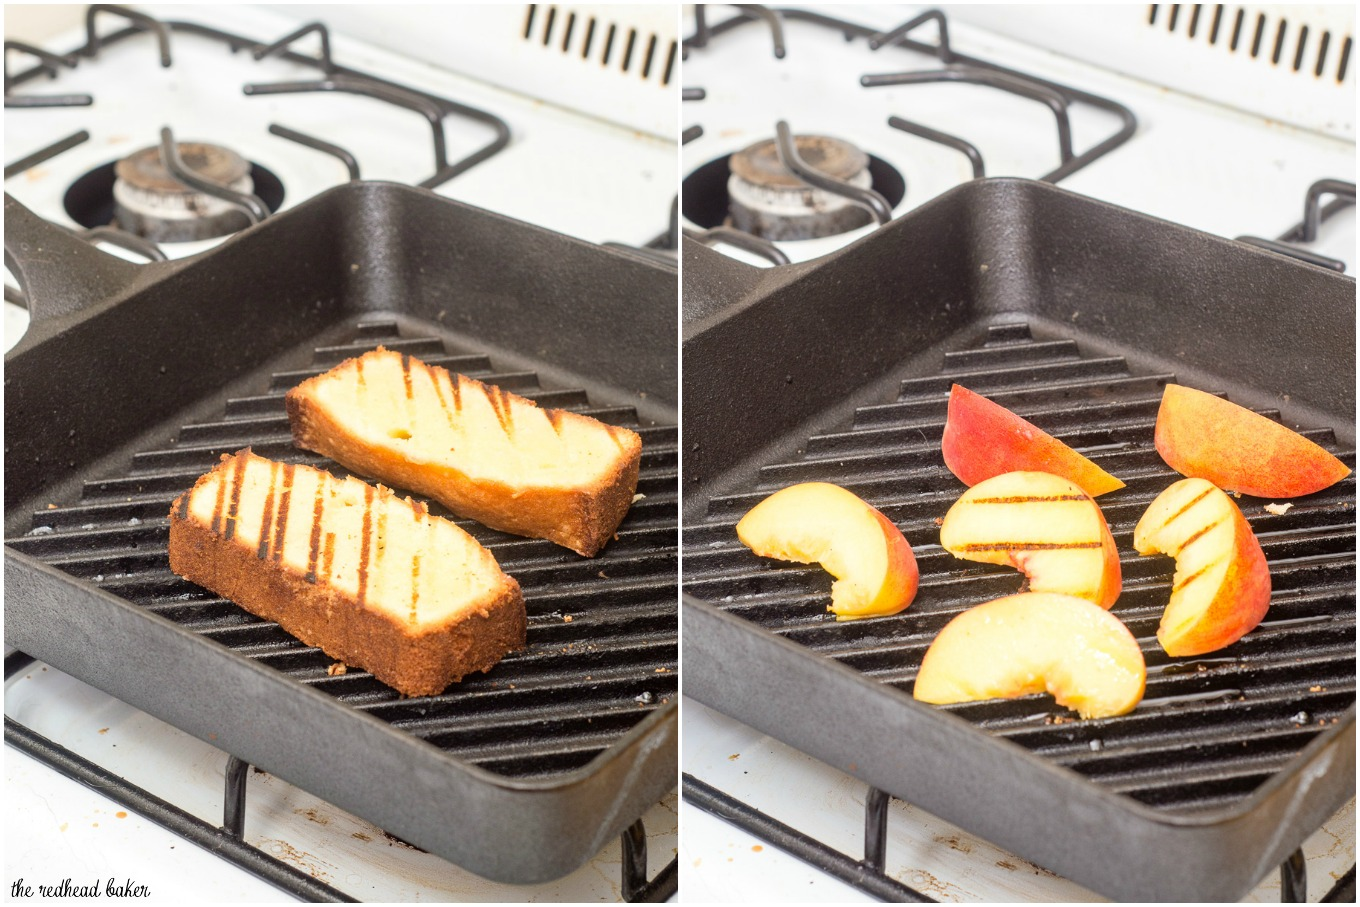 Grilled pound cake with peaches and mascarpone is a delicious summer dessert made right on the grill, the perfect ending to your cookout. #ProgressiveEats